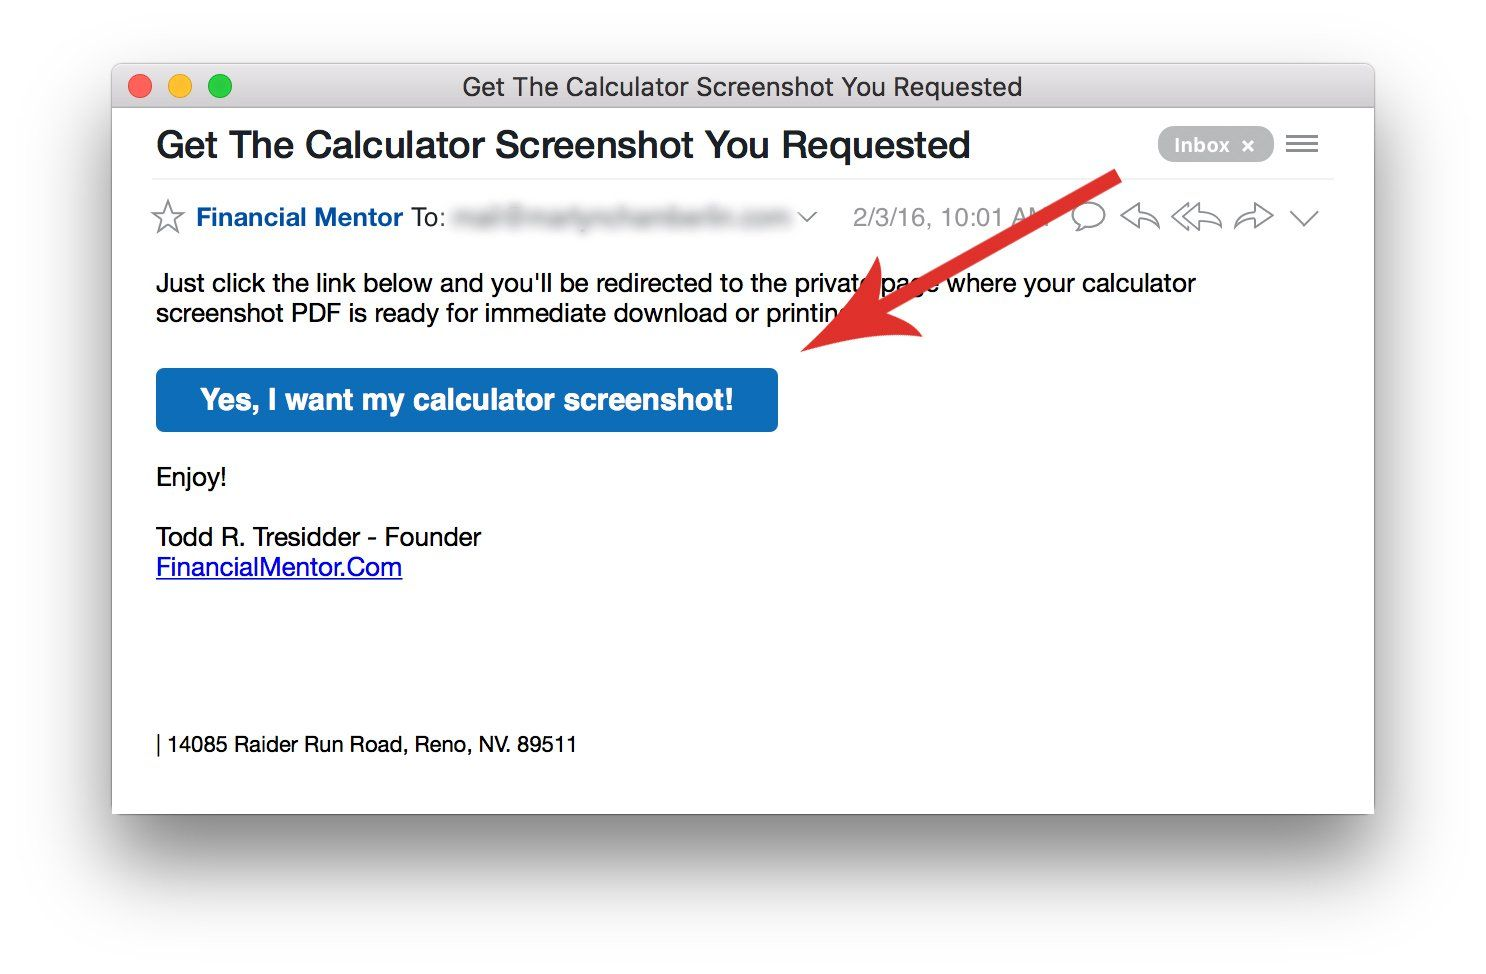 Email confirmation required for calculator screenshot